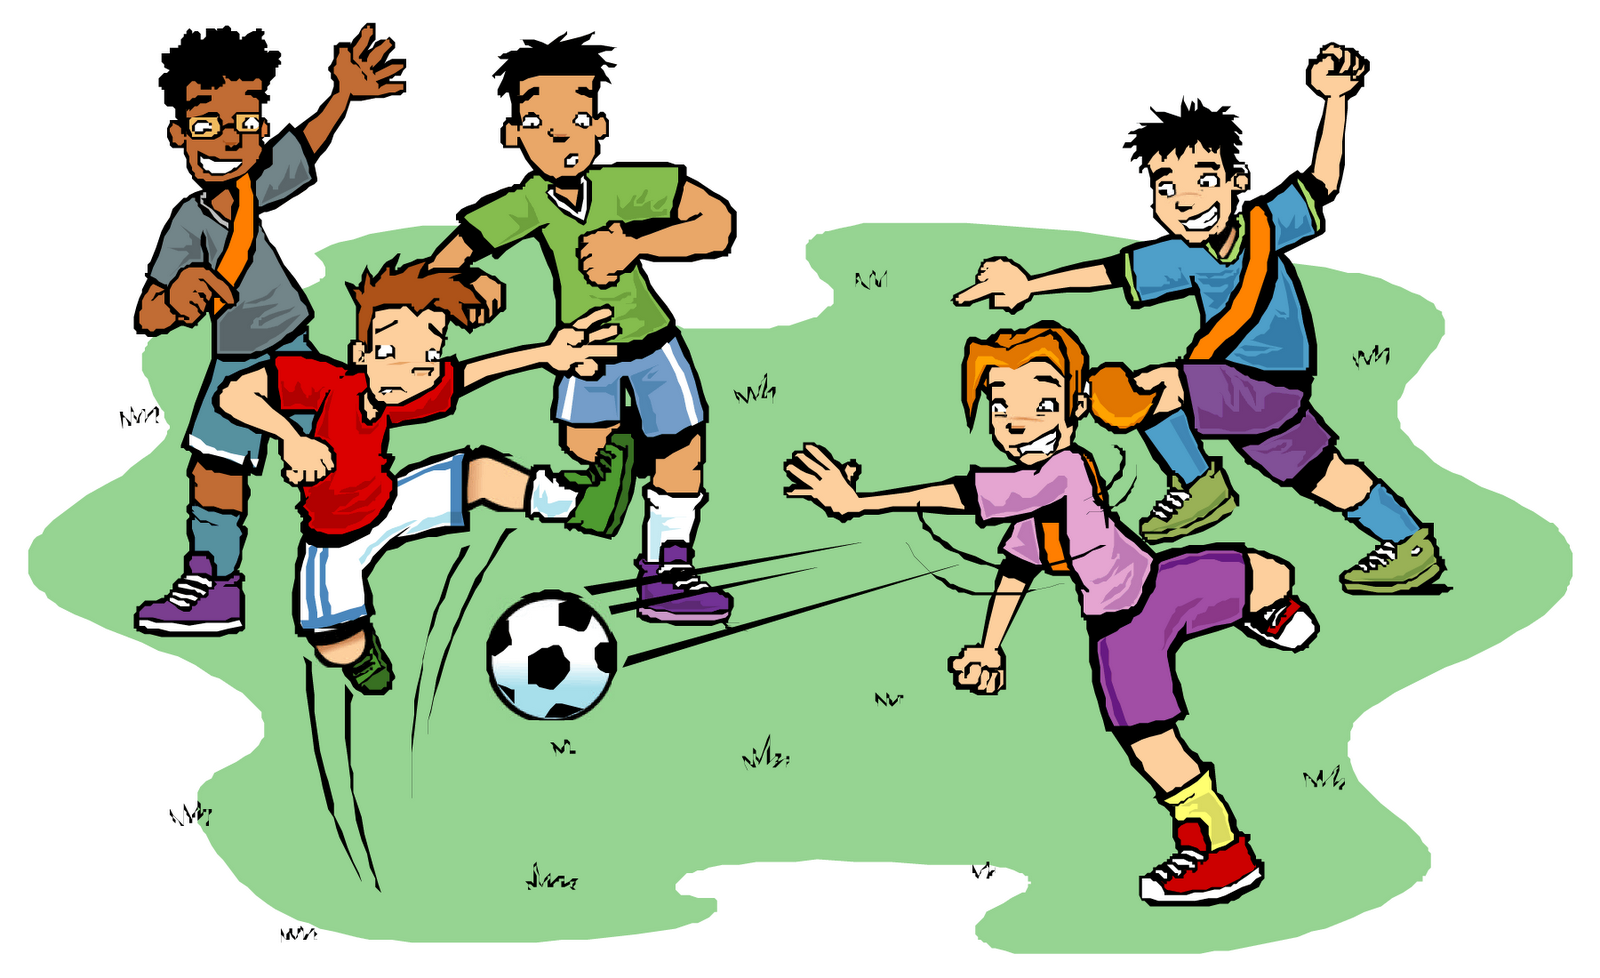 kids playing outside clipart at getdrawings com free for personal rh getdrawings com